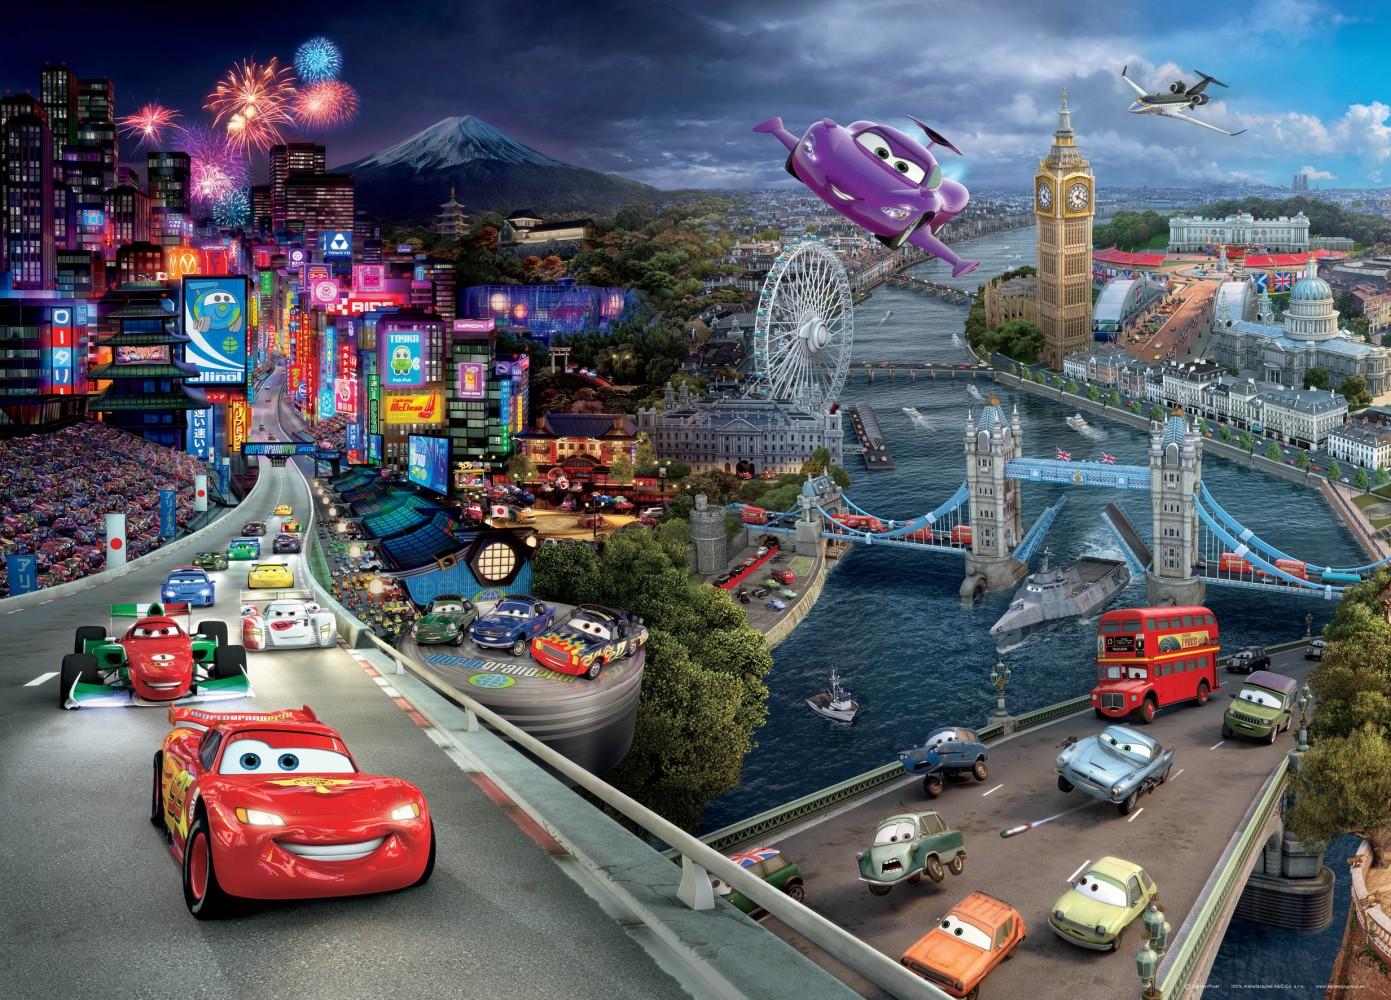 xxl poster wall mural wallpaper disney pixxar cars 2 cars